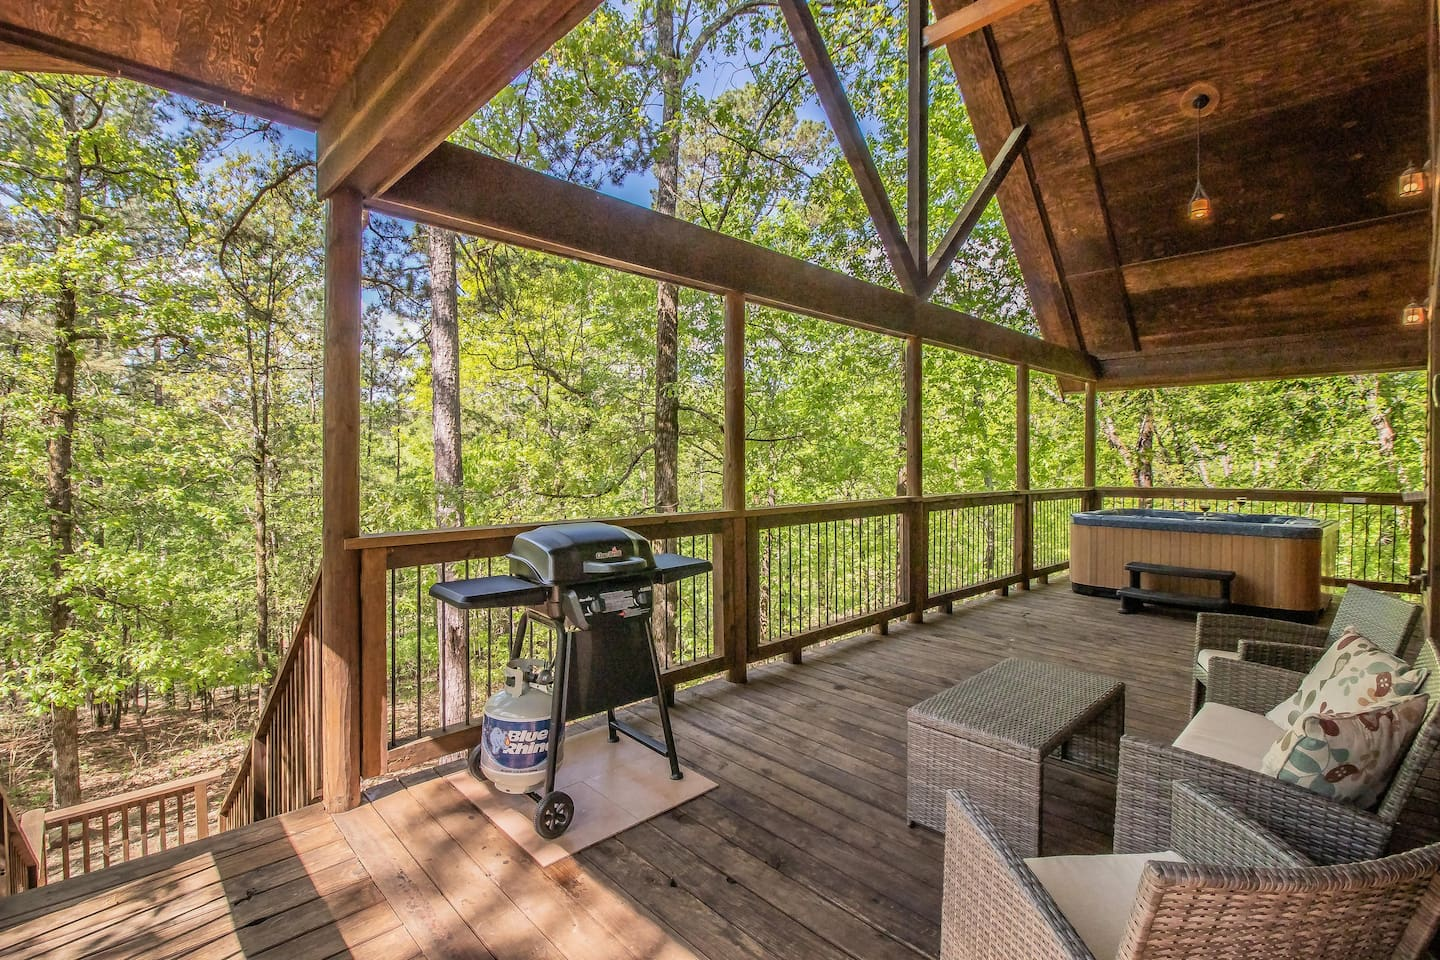 Relax on this deck, high above the trees and enjoy the beauty of Broken Bow.